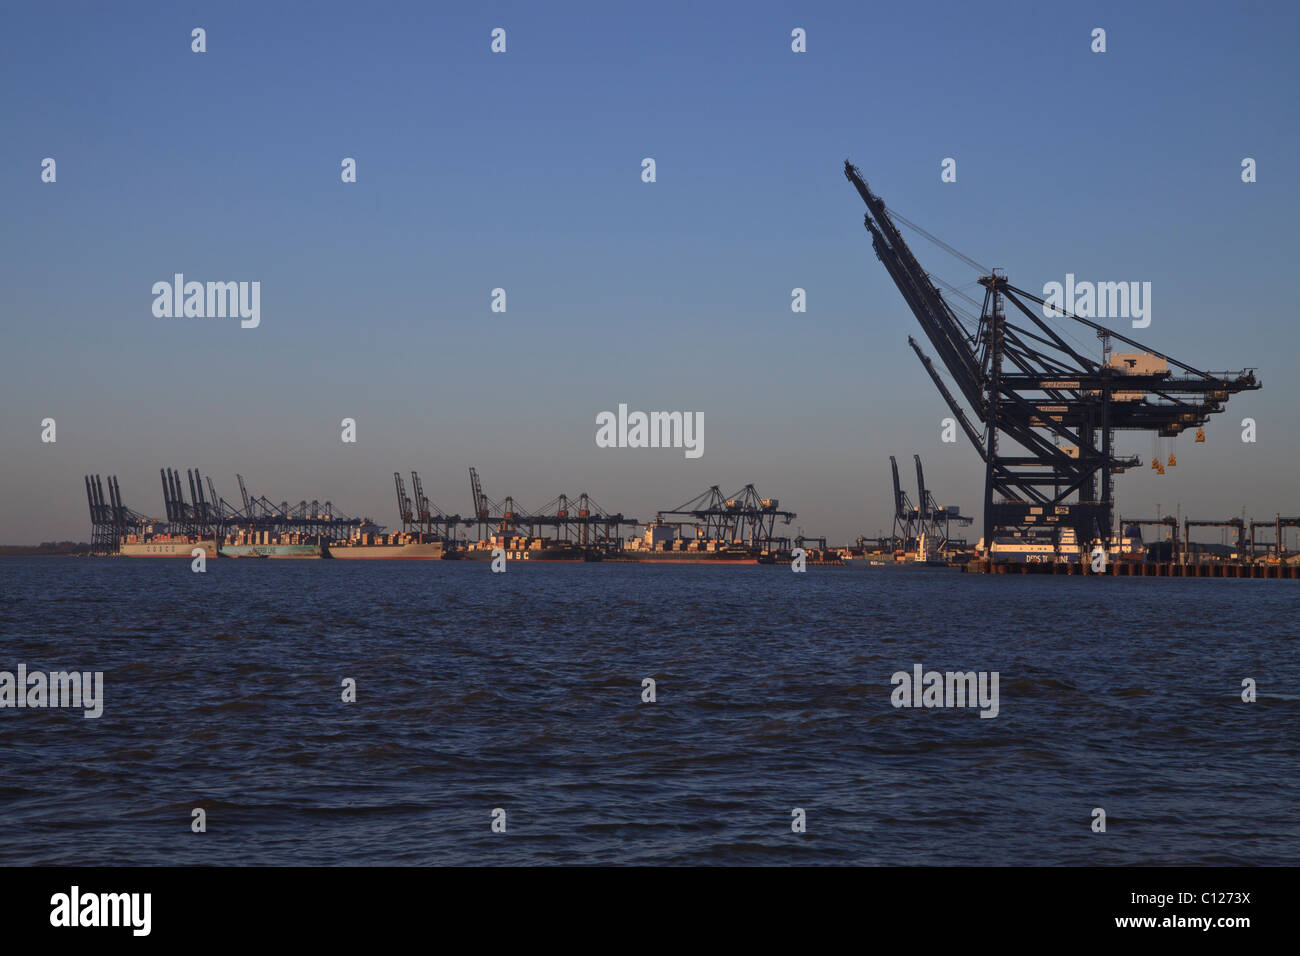 The container port at Felixstowe, Suffolk, England - Stock Image